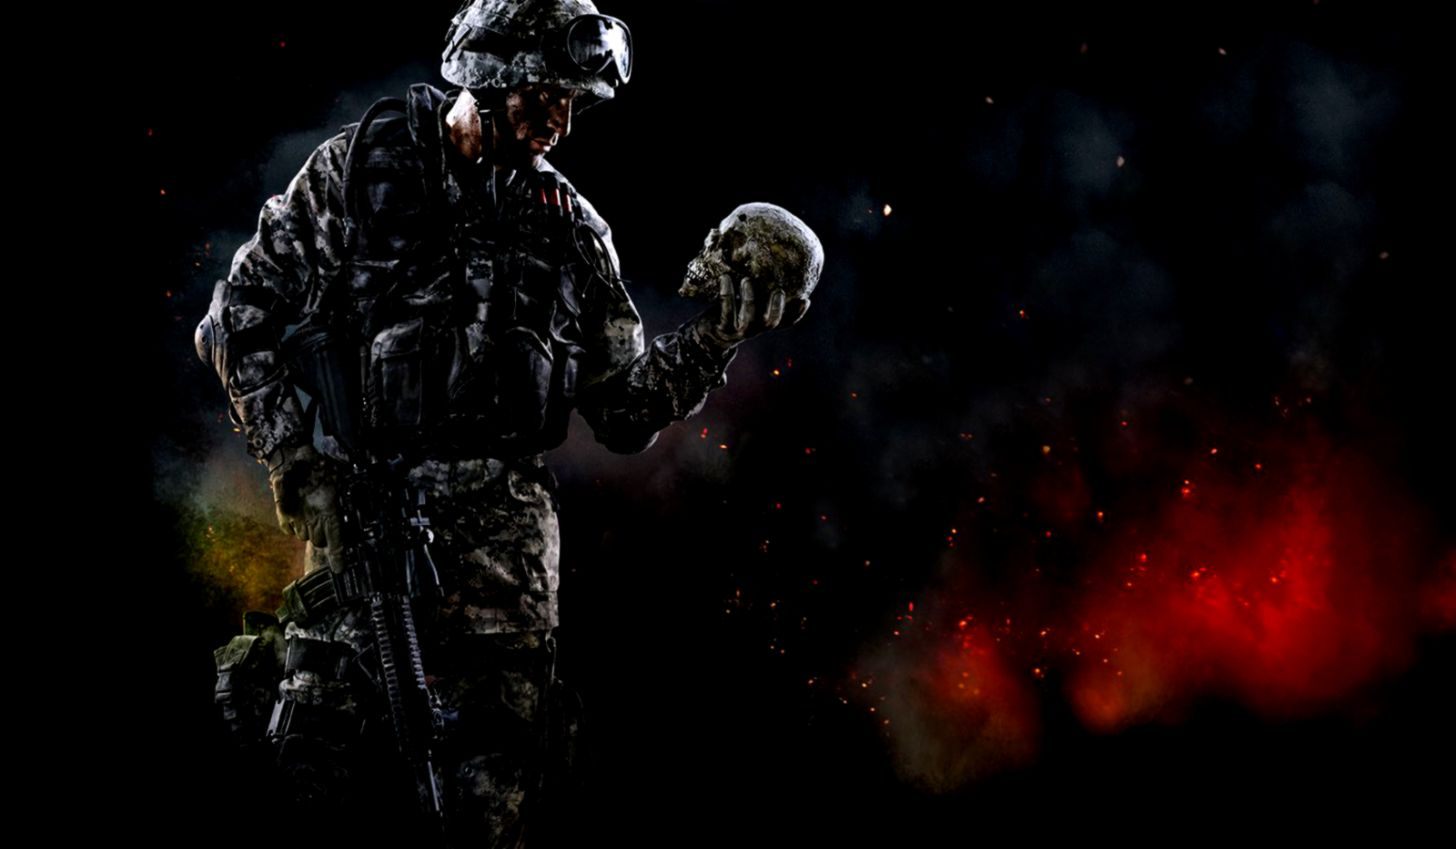 war battlefield soldier hd wallpaper | high definitions wallpapers